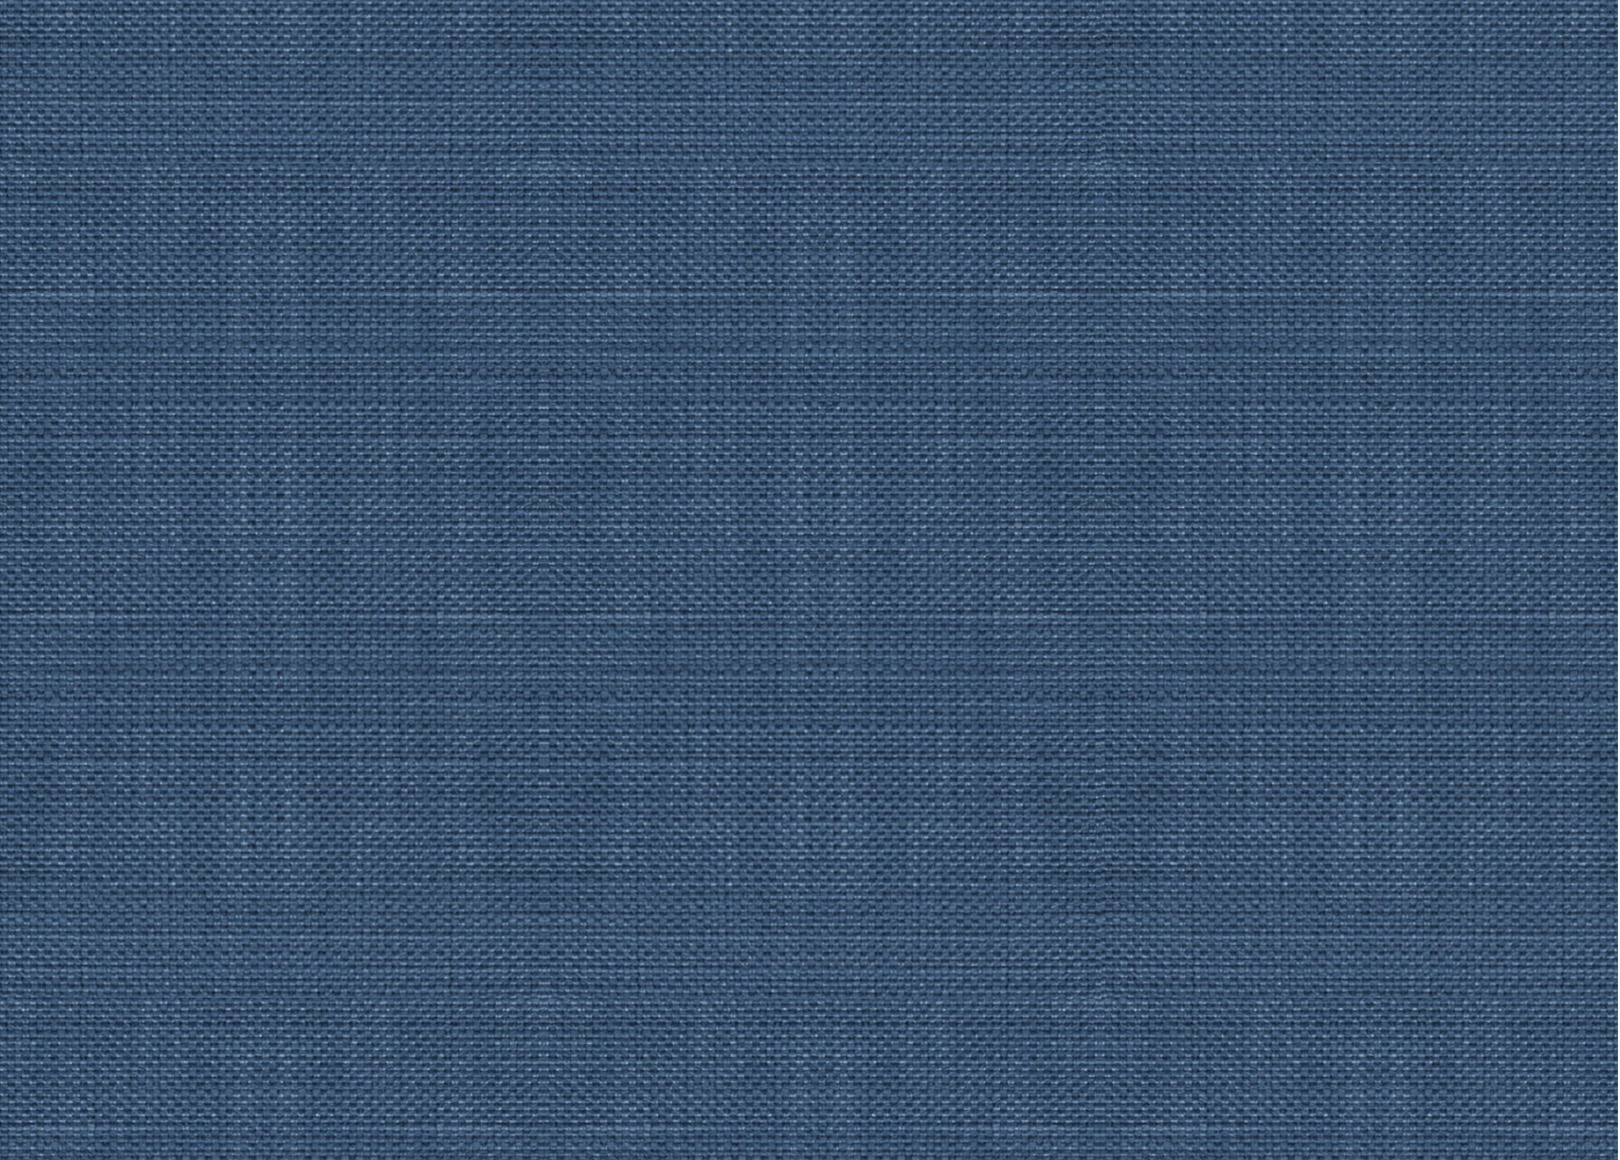 Springer Chambray Fabric Fabrics Ethan Allen